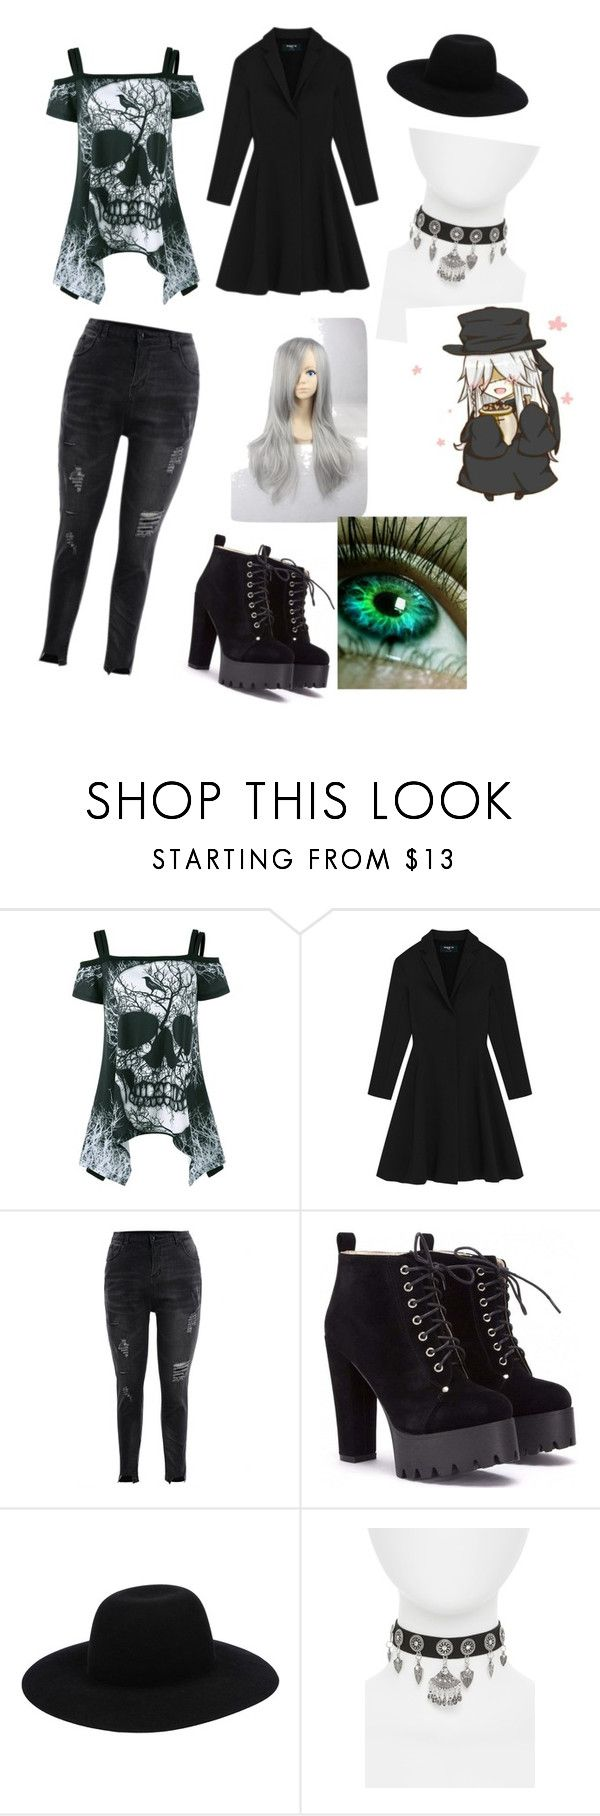 """""""Black butler: undertaker"""" by mackenzie-kitts ❤ liked on Polyvore featuring Off-White and Topshop"""